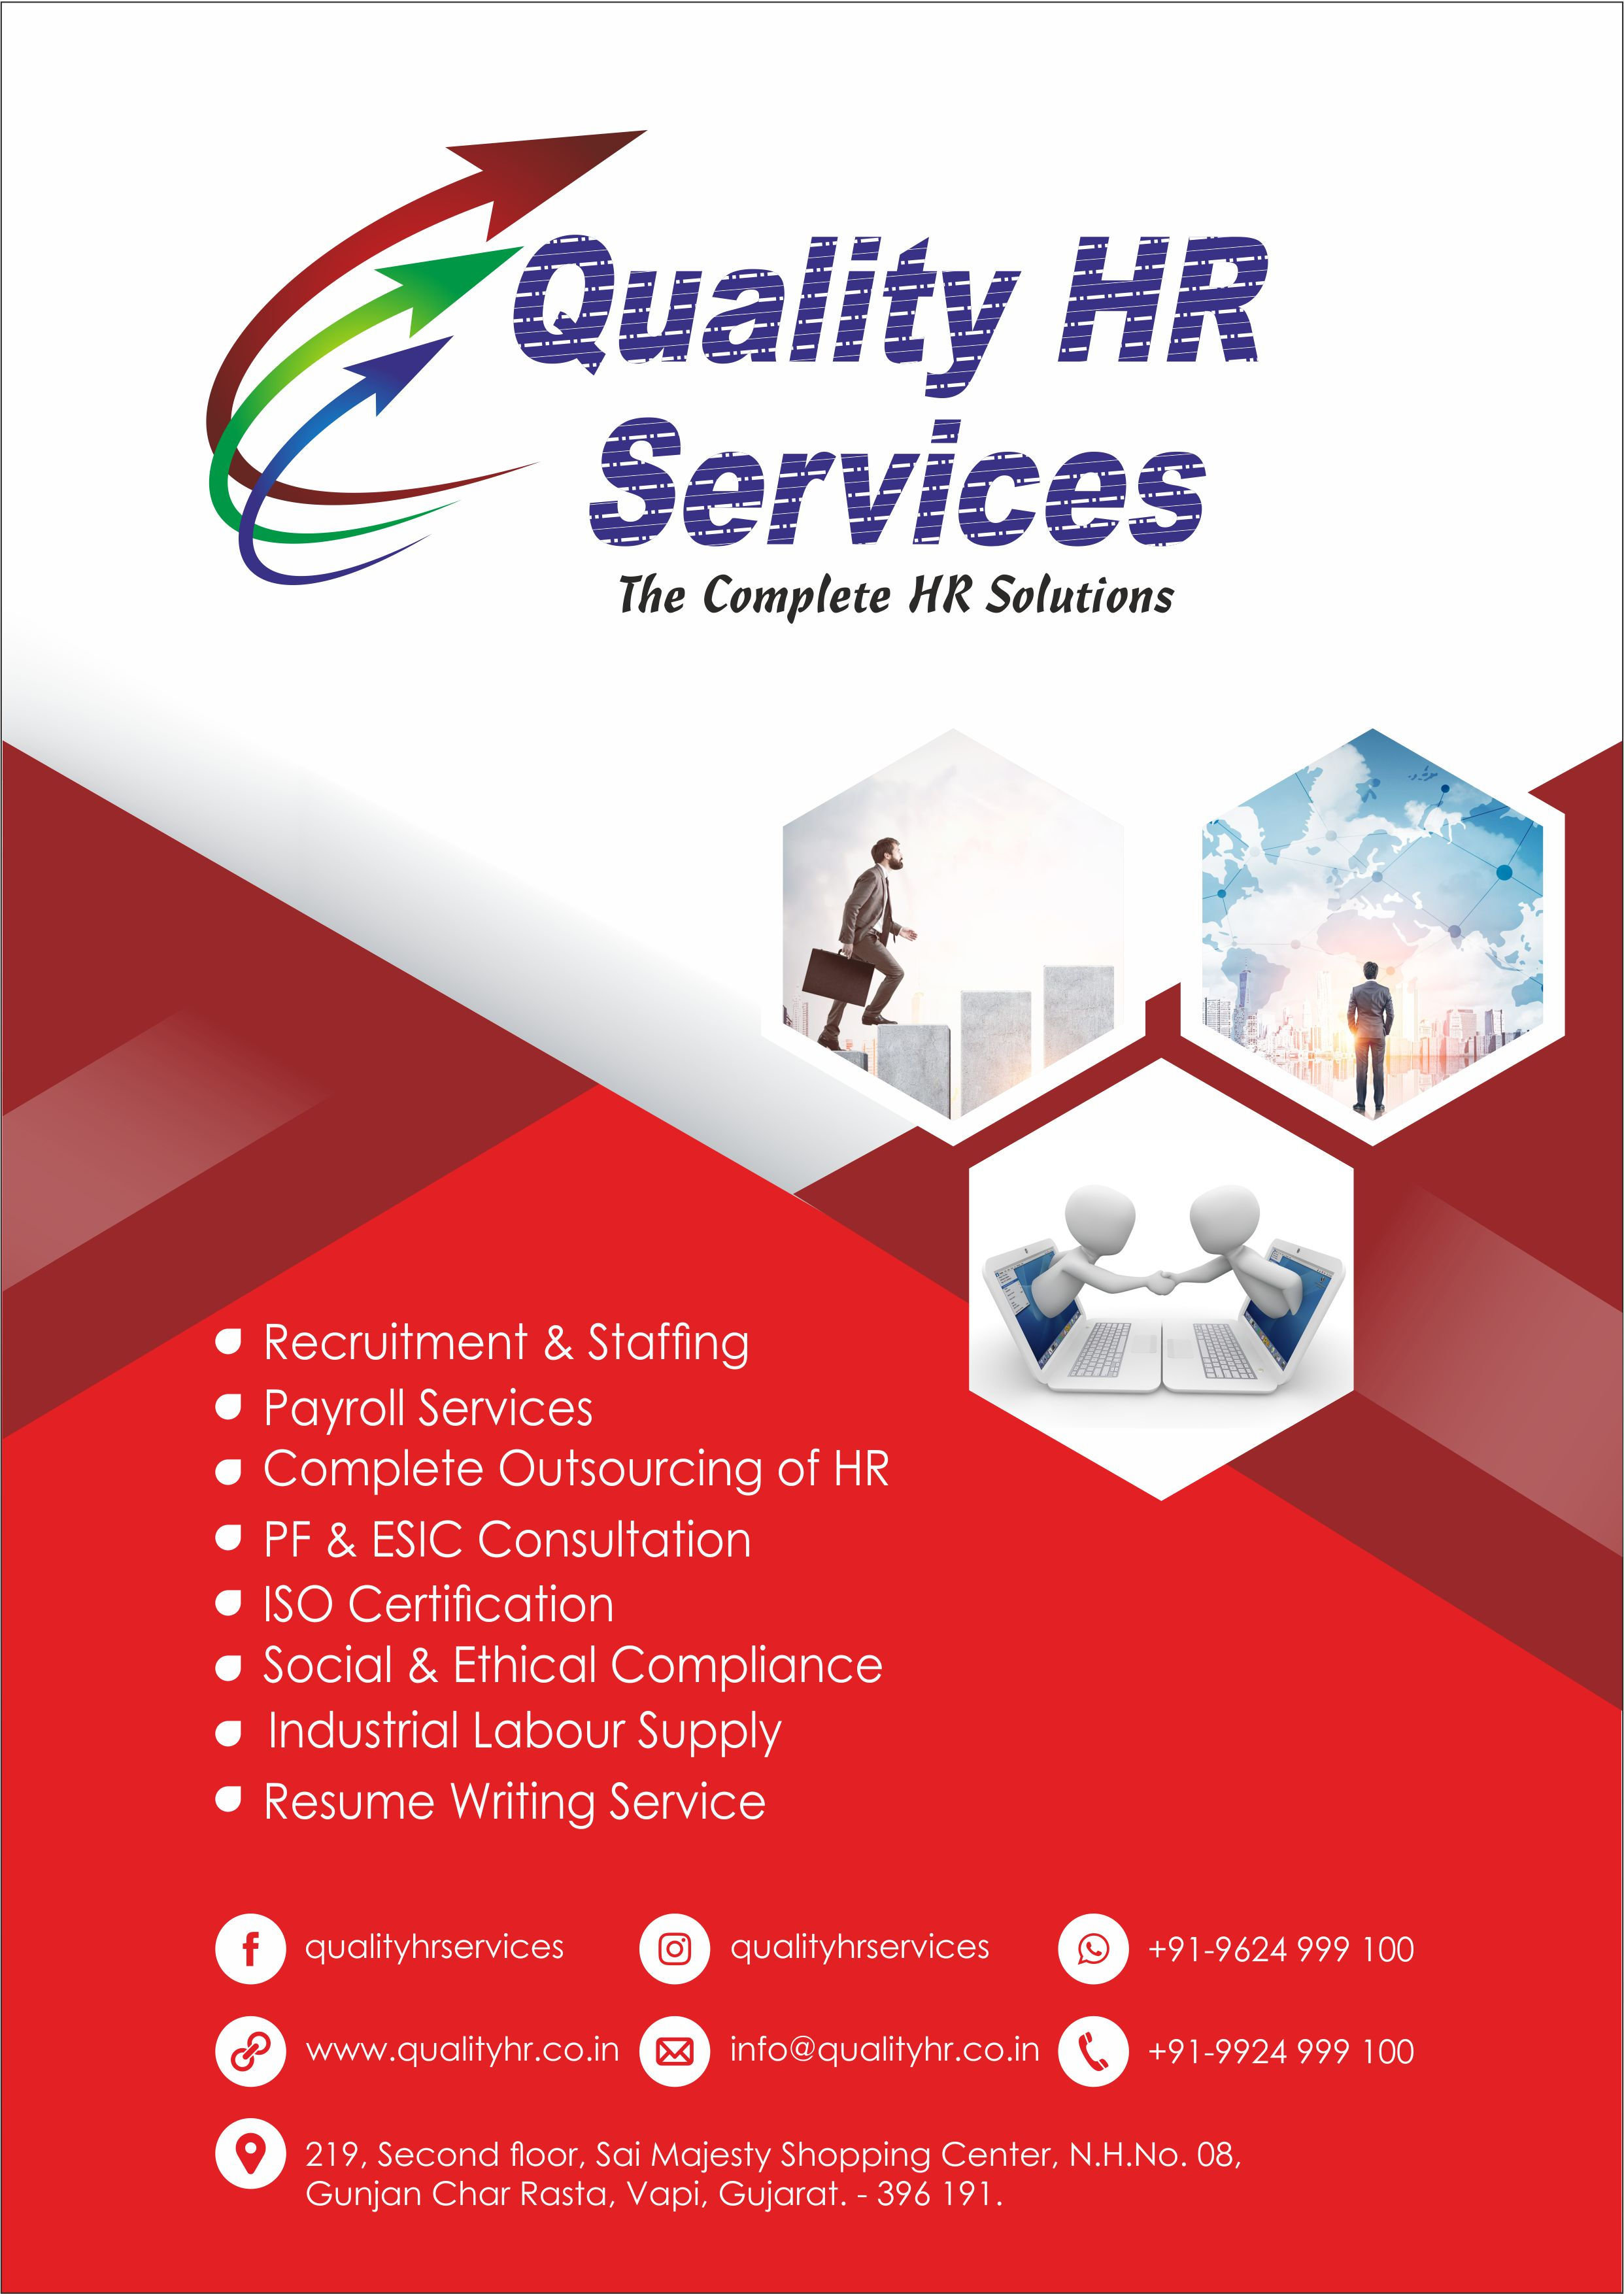 QualityHrServices